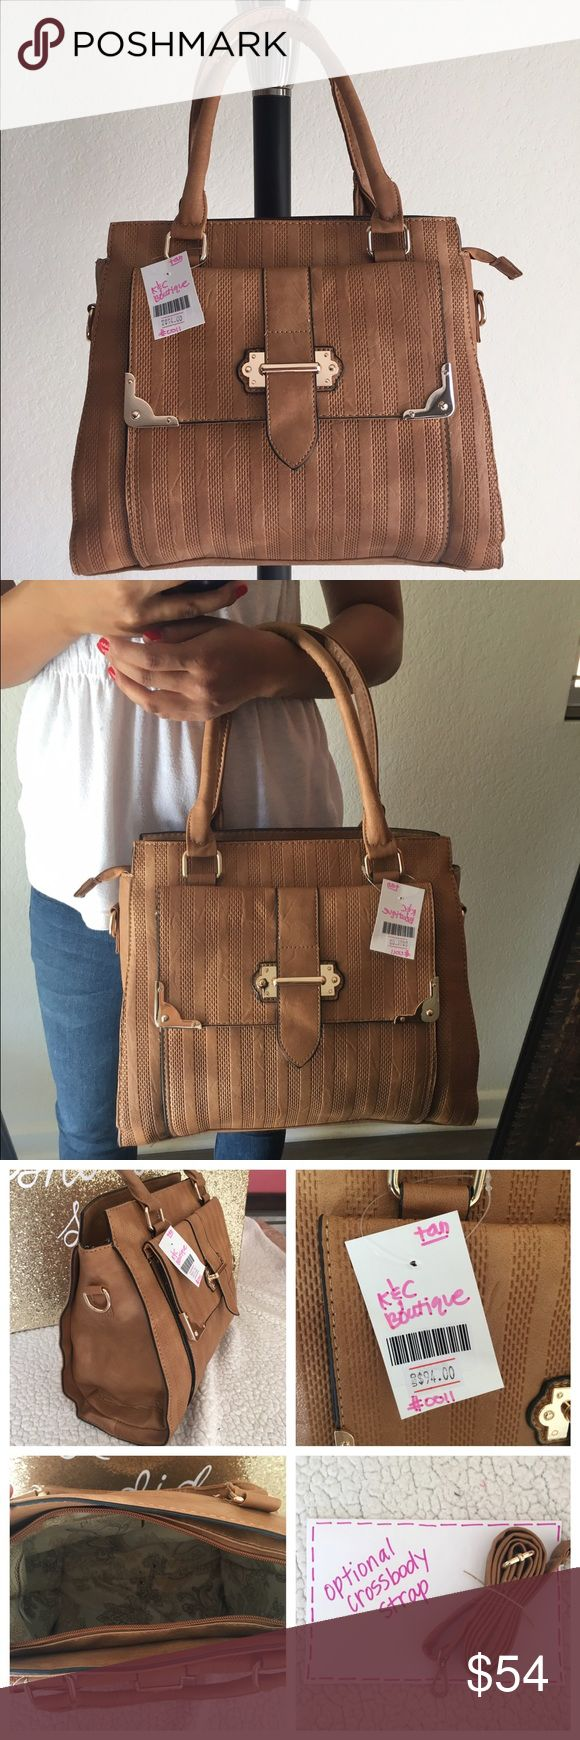 """🆕 Chestnut Champ handbag 🔥Brand New Boutique Item (handbag)  ONLY 1 of this color and style available!👜 -Brand: sold by Karma&Cali (retails for $94) -Color: camel+gold hardware  -Dimensions: 13"""" length, 12"""" height, 4.5"""" width -Details: ✨textured✨zipper closure, front envelope, back&interior pocket, two interior pouches, optional crossbody strap included -Other: creases iron out with use, lighting varies color/cannot be restocked/open to  •good o f f e r s•using Posh's offer button/ **soft…"""